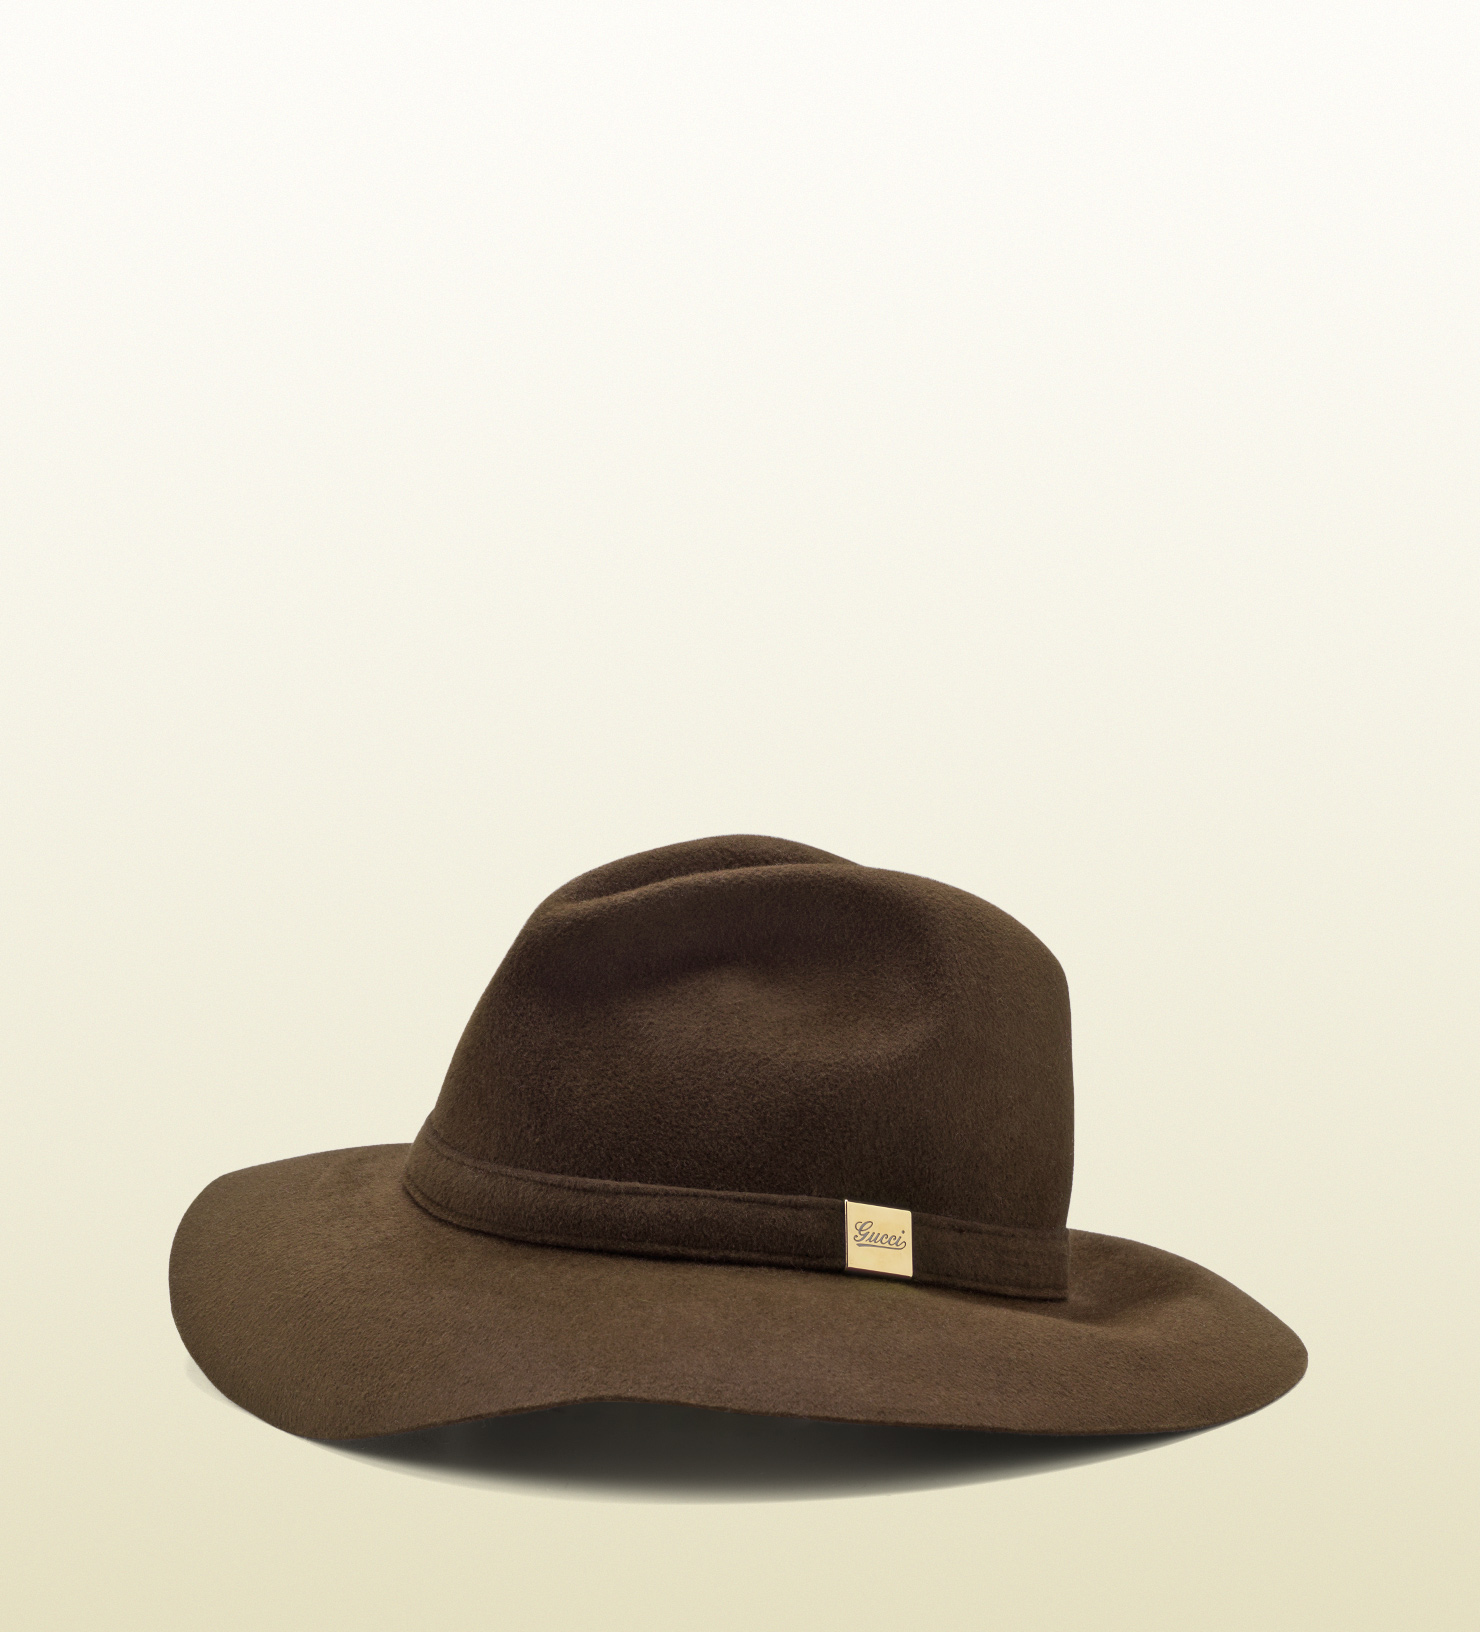 e931e49b Gucci Trilby Hat with Engraved Gucci Script Logo in Brown - Lyst